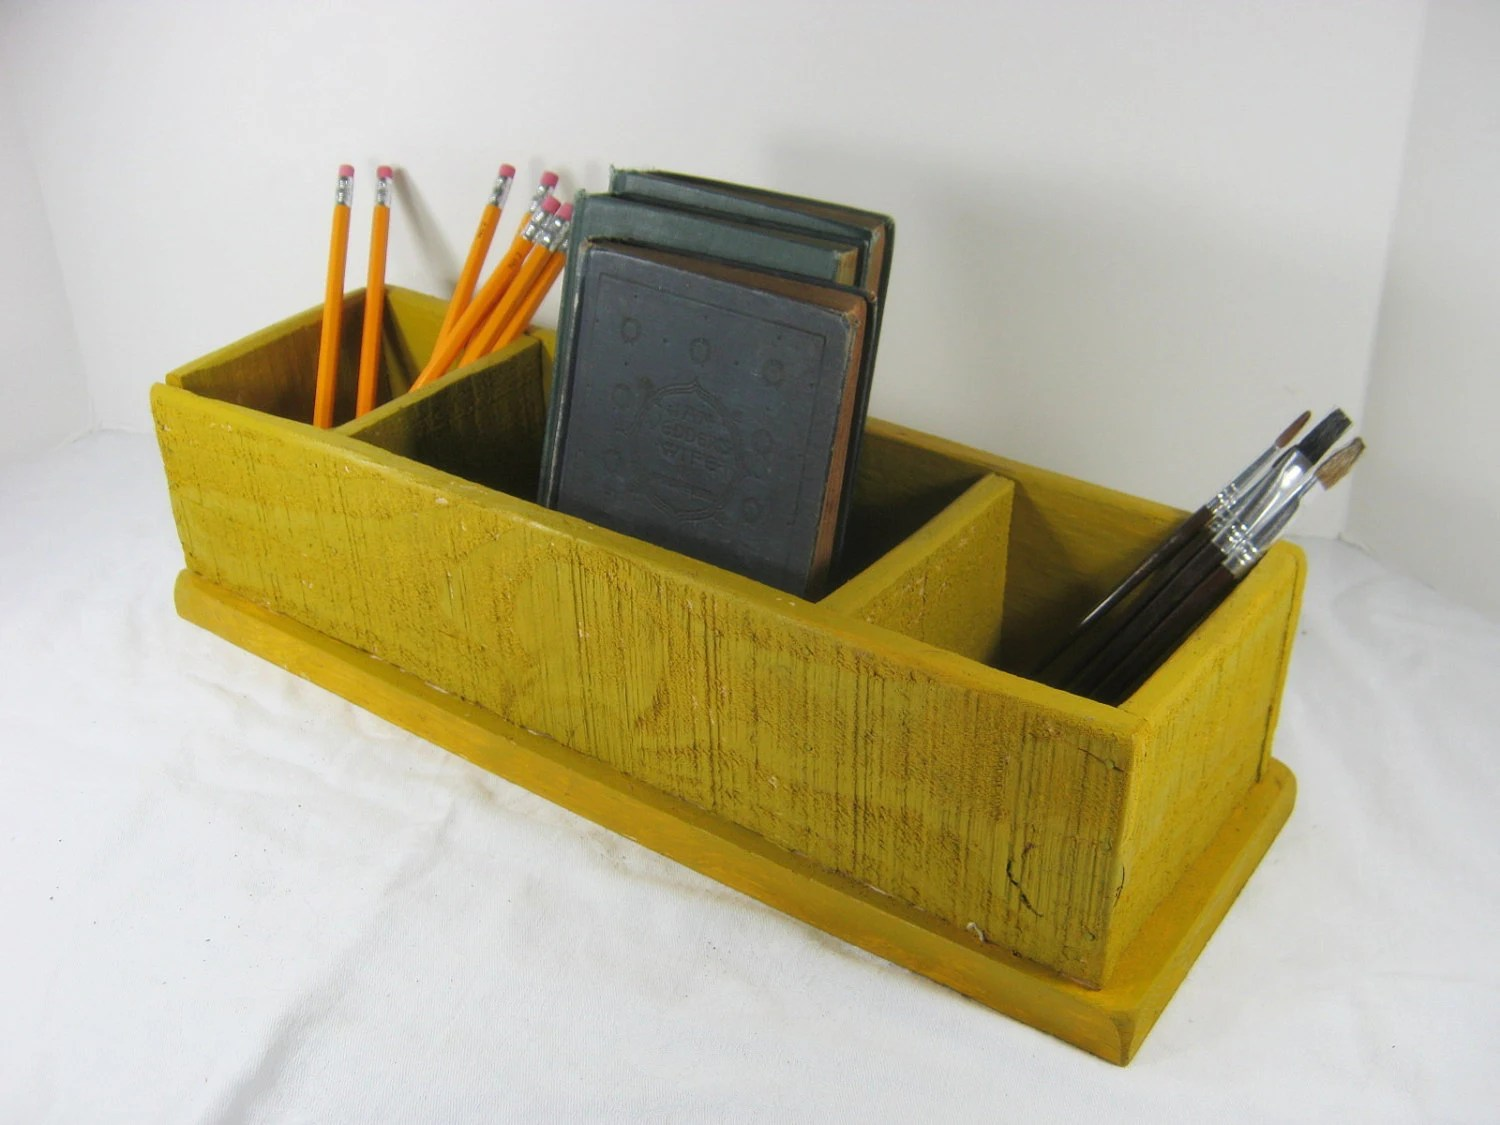 Desk Organizer Wood Vintage Desk Organizer Wood Storage Box Chartreuse Paint 3